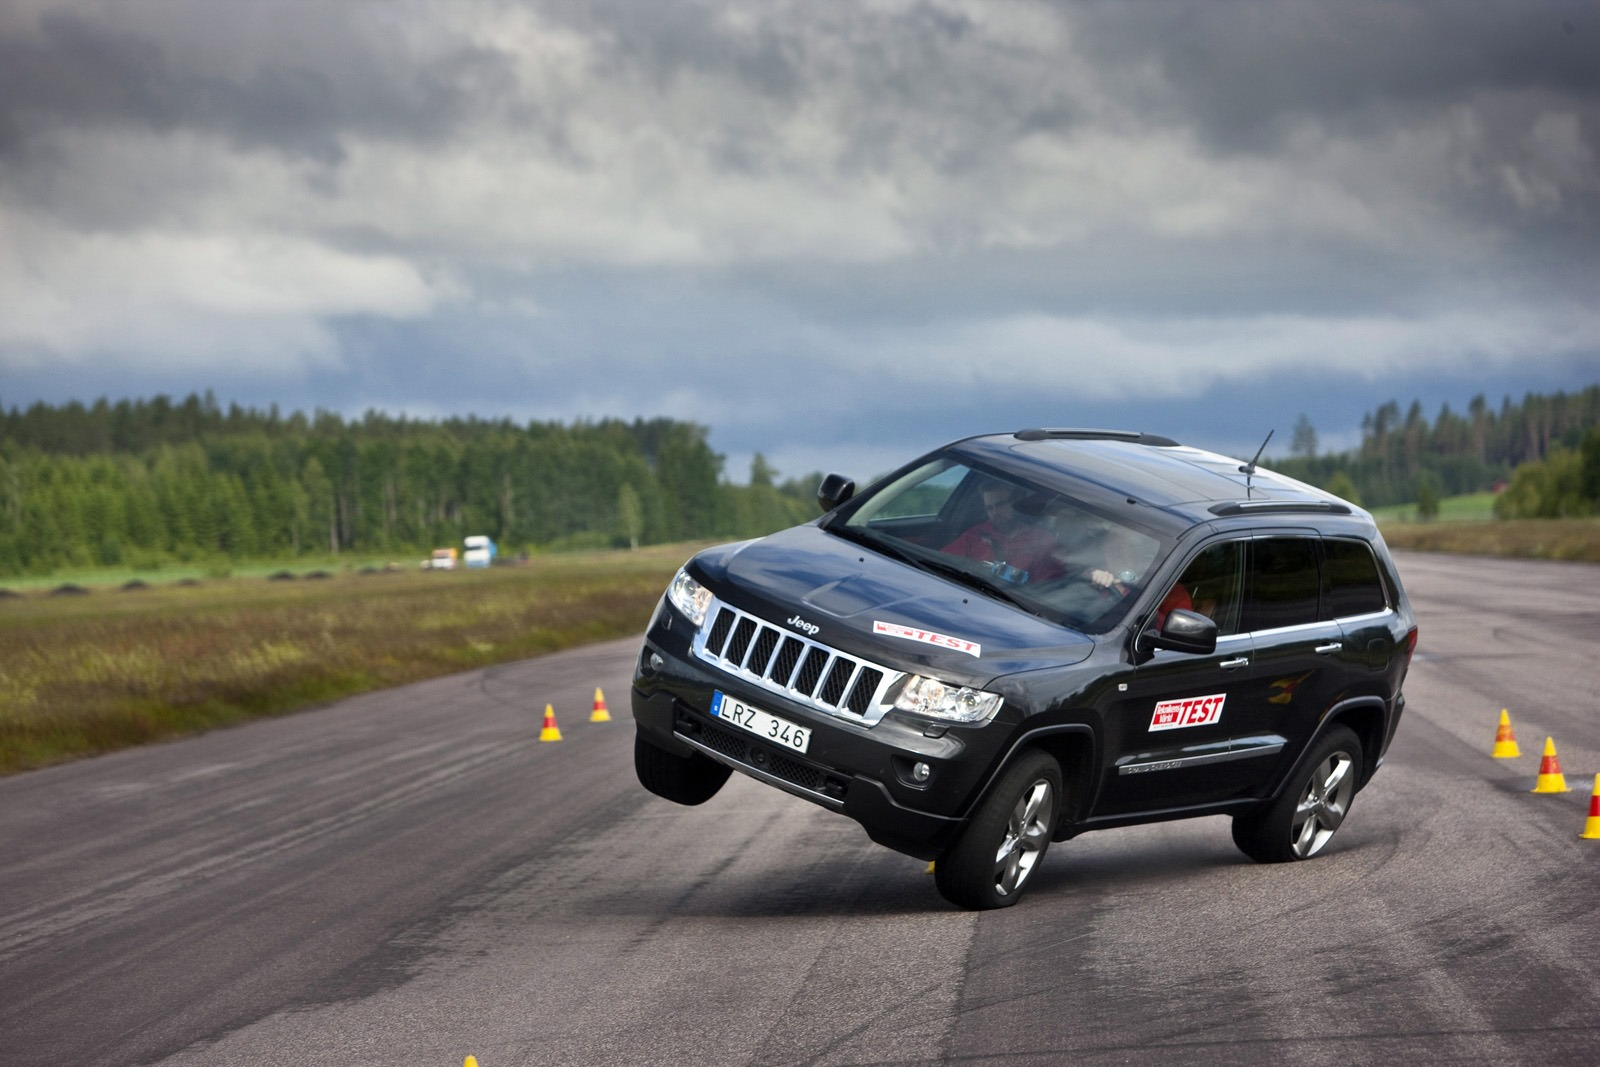 jeep cars news 2013 grand cherokee passes swedish moose test. Black Bedroom Furniture Sets. Home Design Ideas